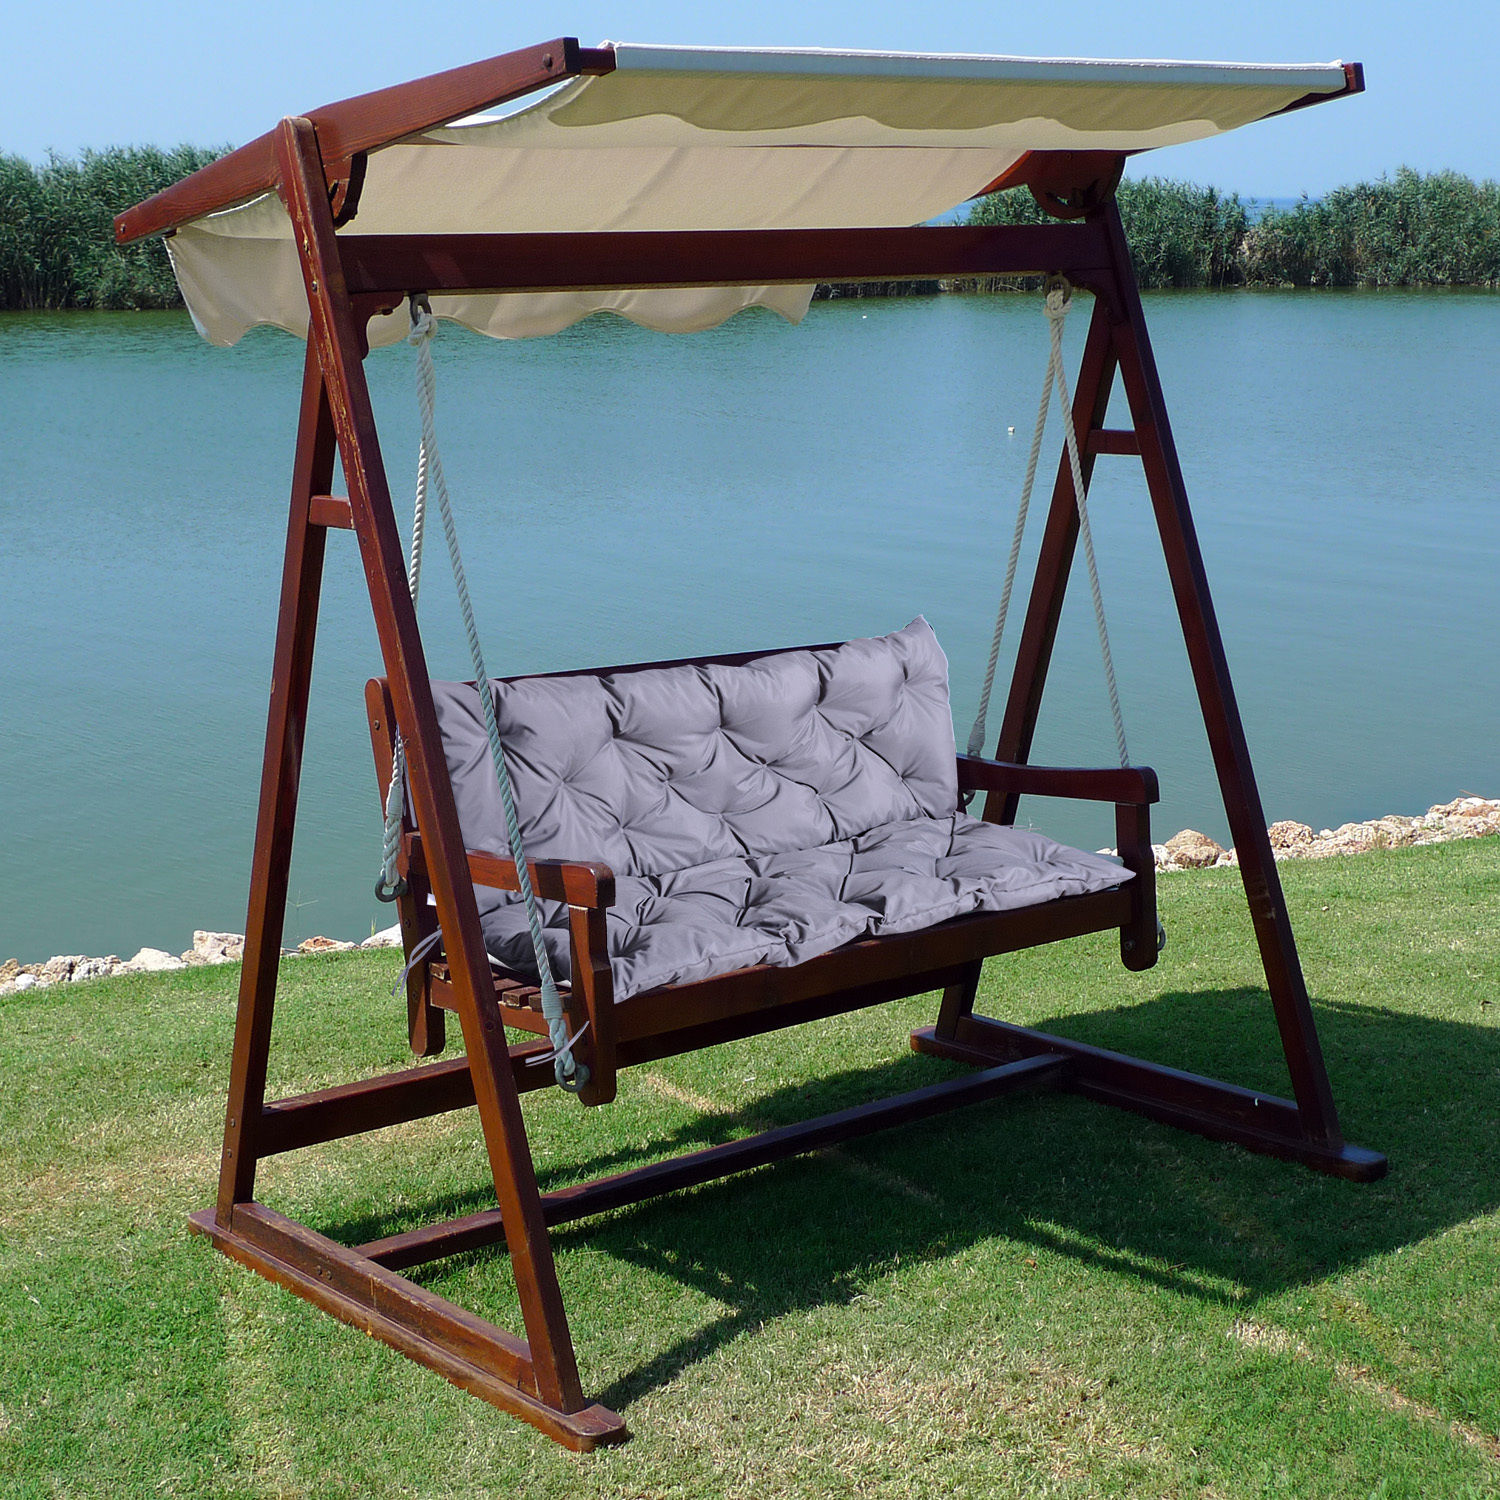 3 Seater / 2 Seater Bench Swing Seat Cushion ONLY Garden Furniture ...